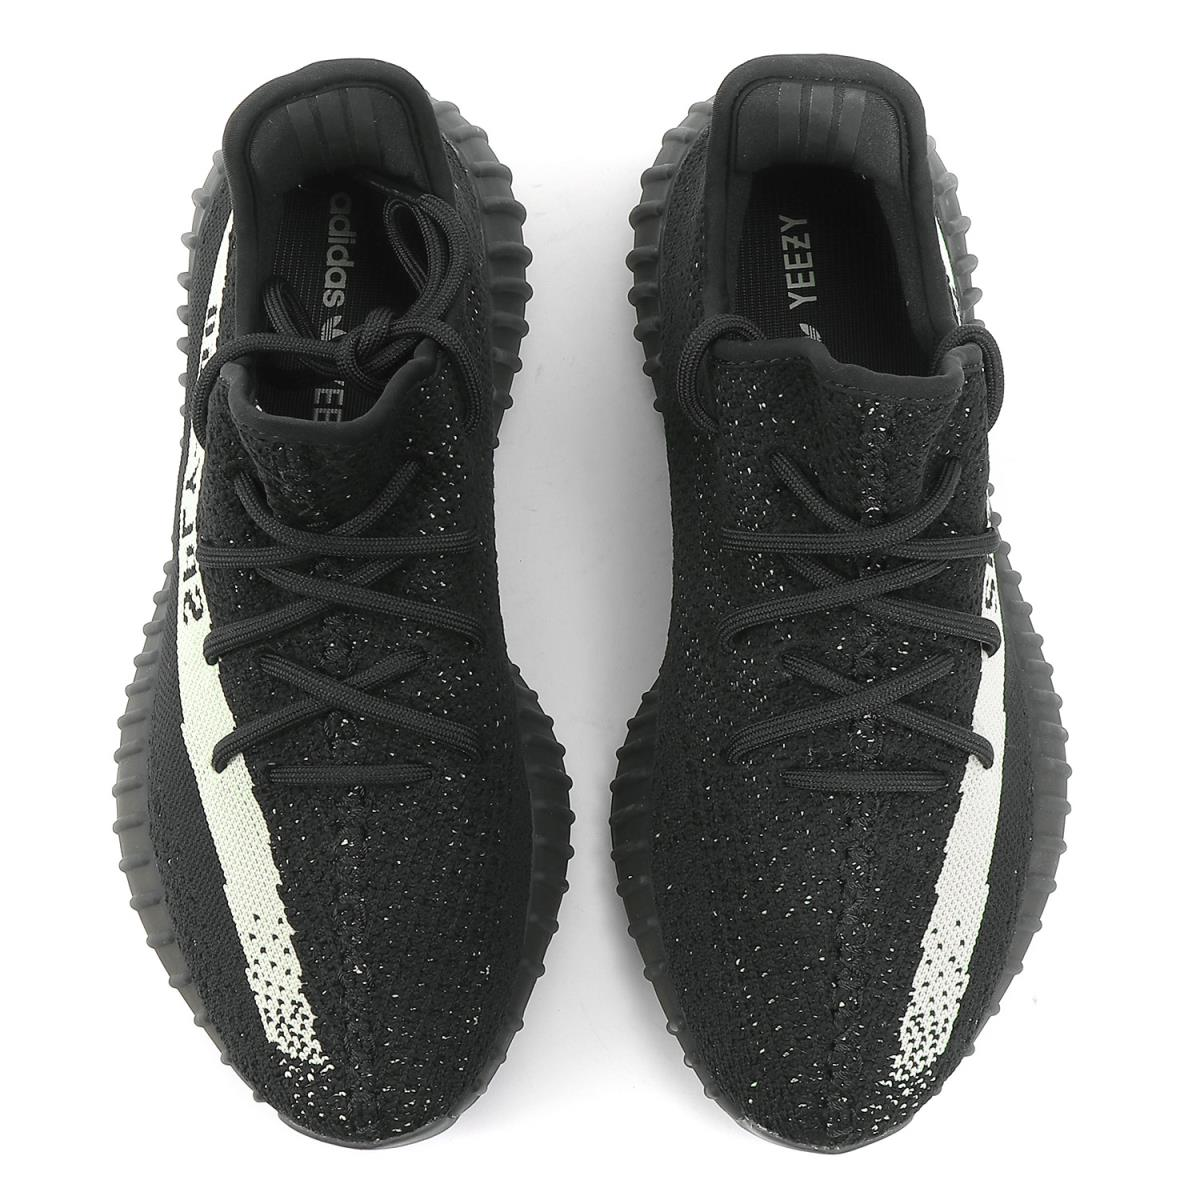 5b4f8089859 adidas (Adidas) YEEZY BOOST 350 V2 OREO (BY1604) core black X white US8 .5(26.5cm)